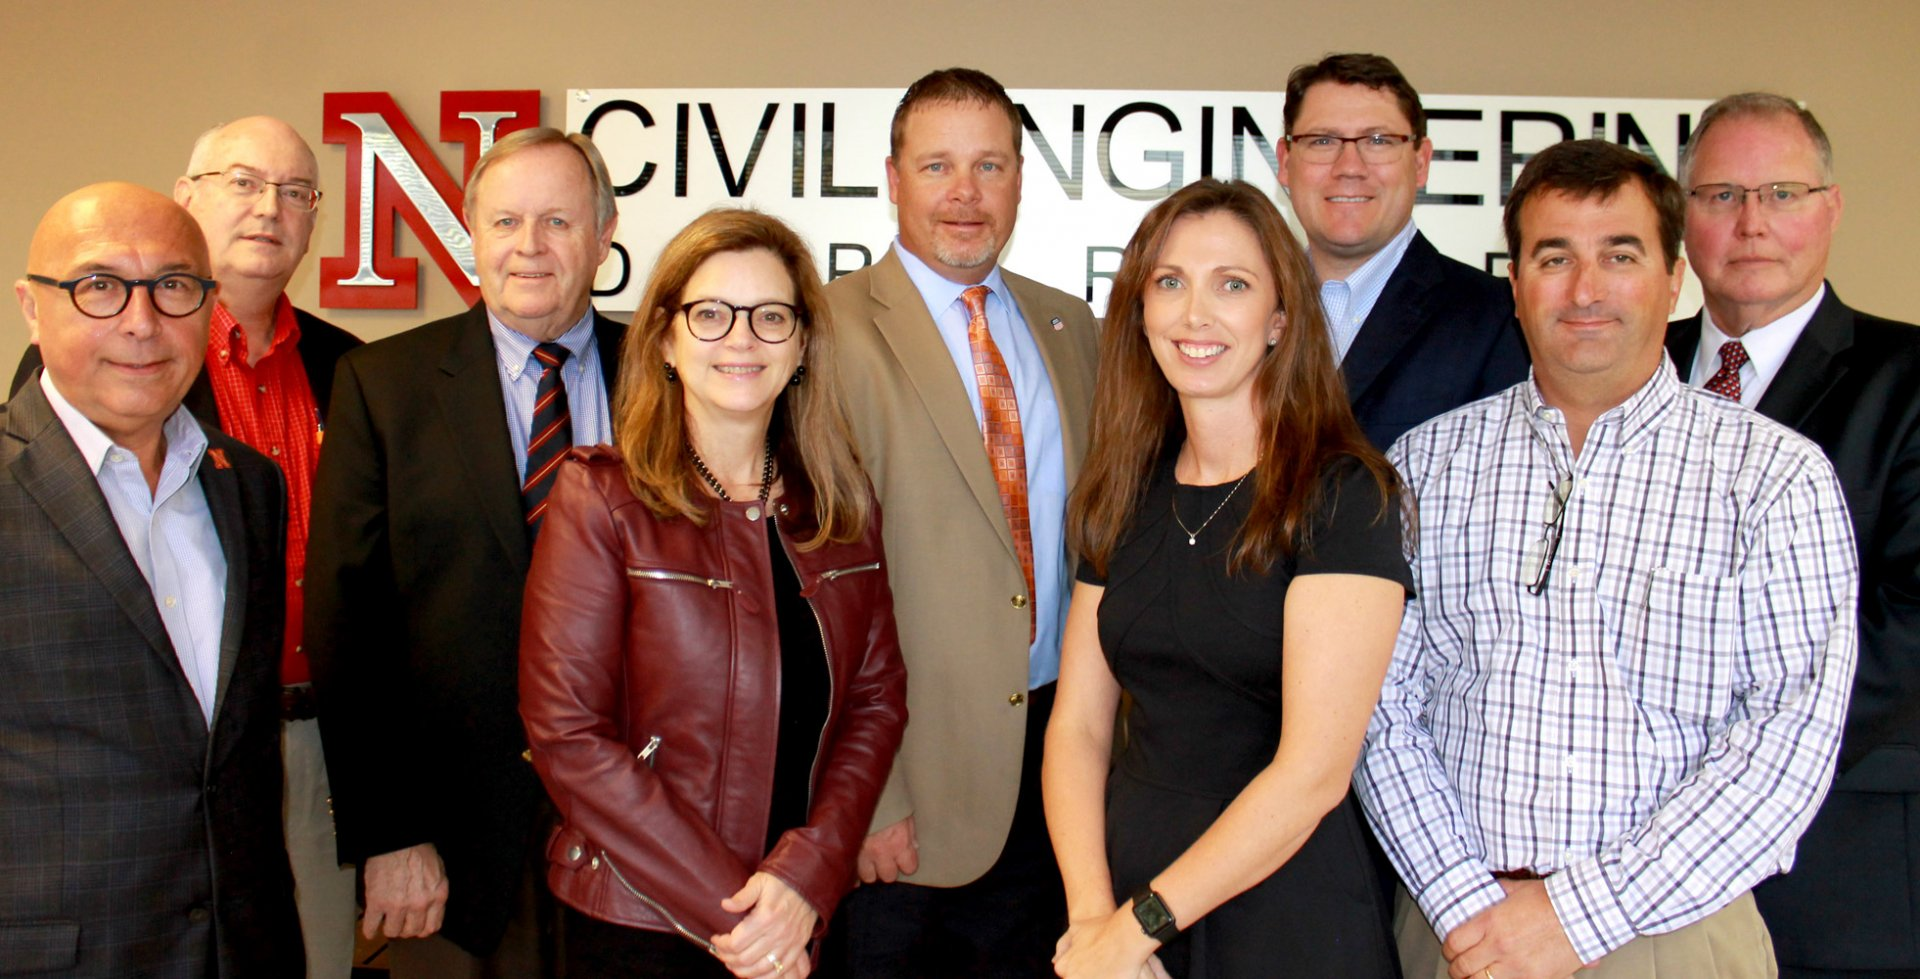 UNL Civil Engineering Advisory Board at the October 2016 meeting